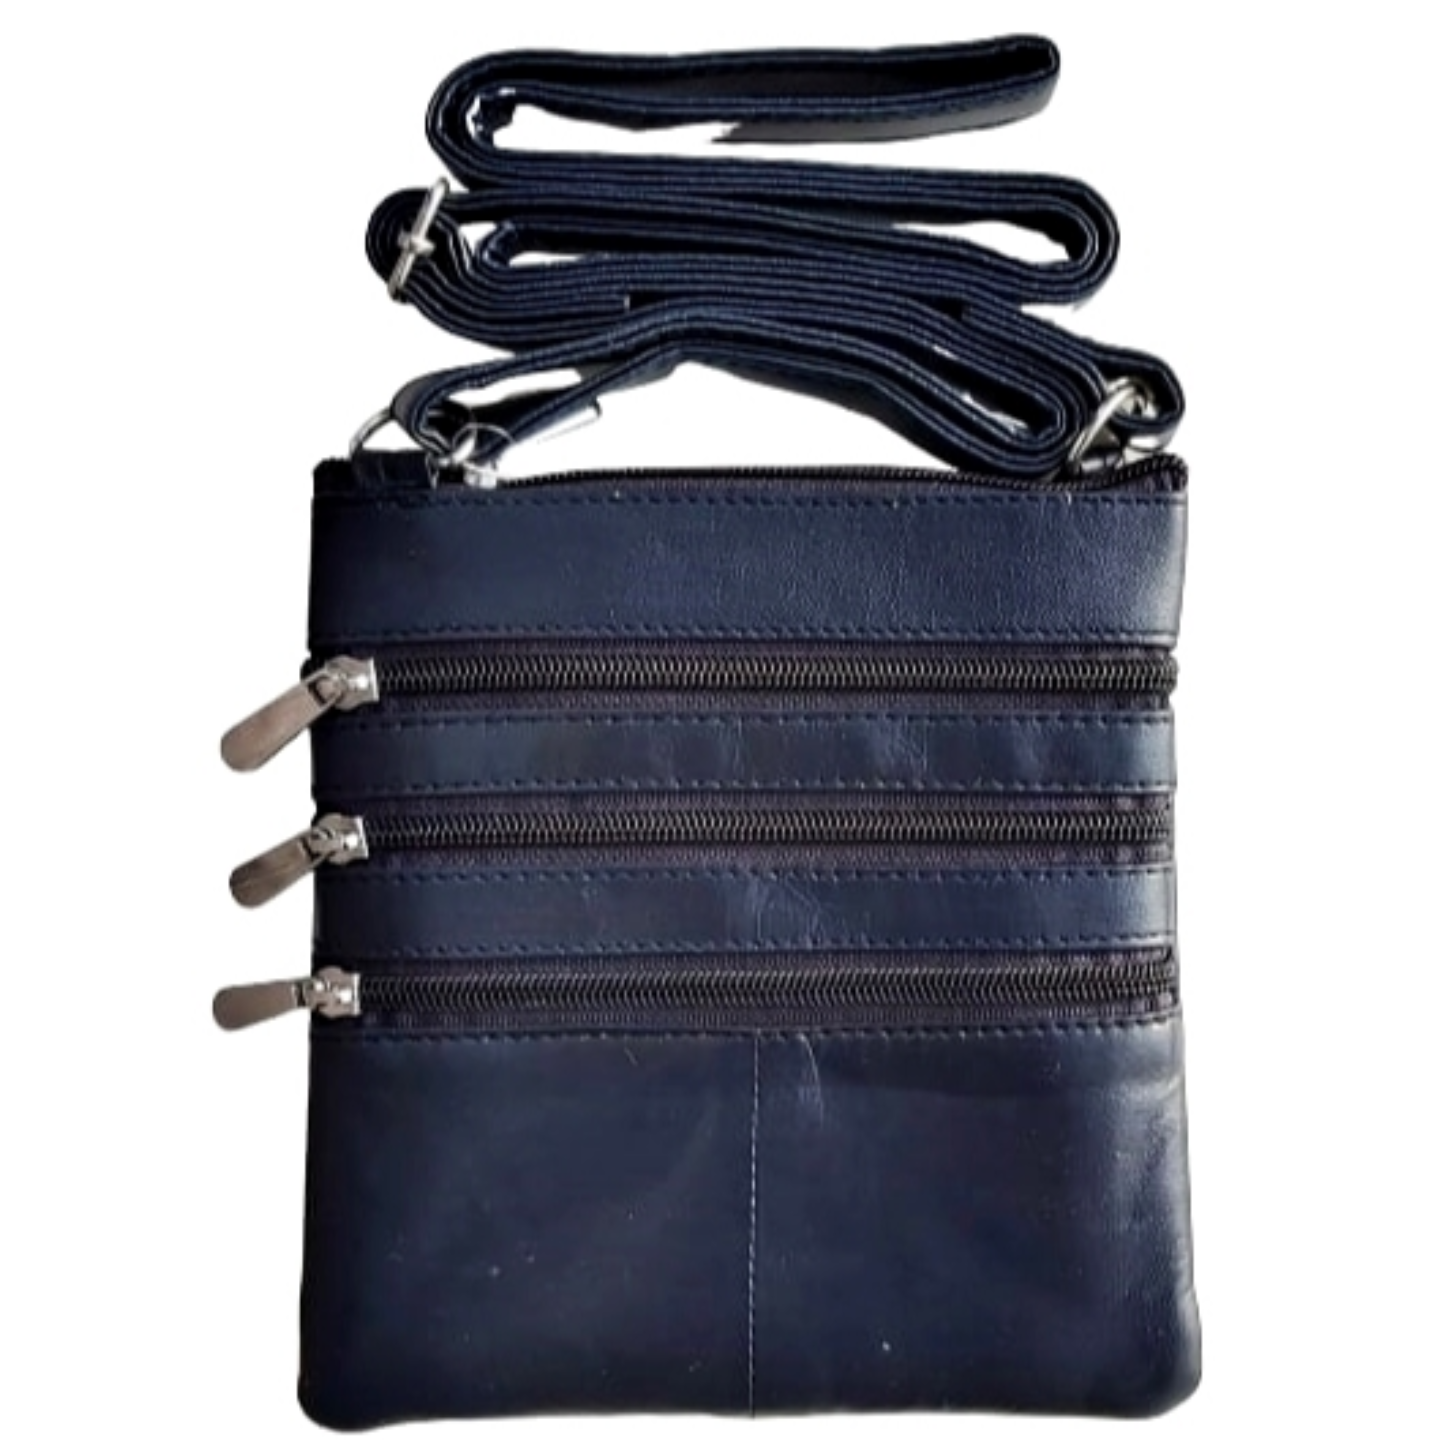 Mini Sling & Crossbody Style 1027 Navy